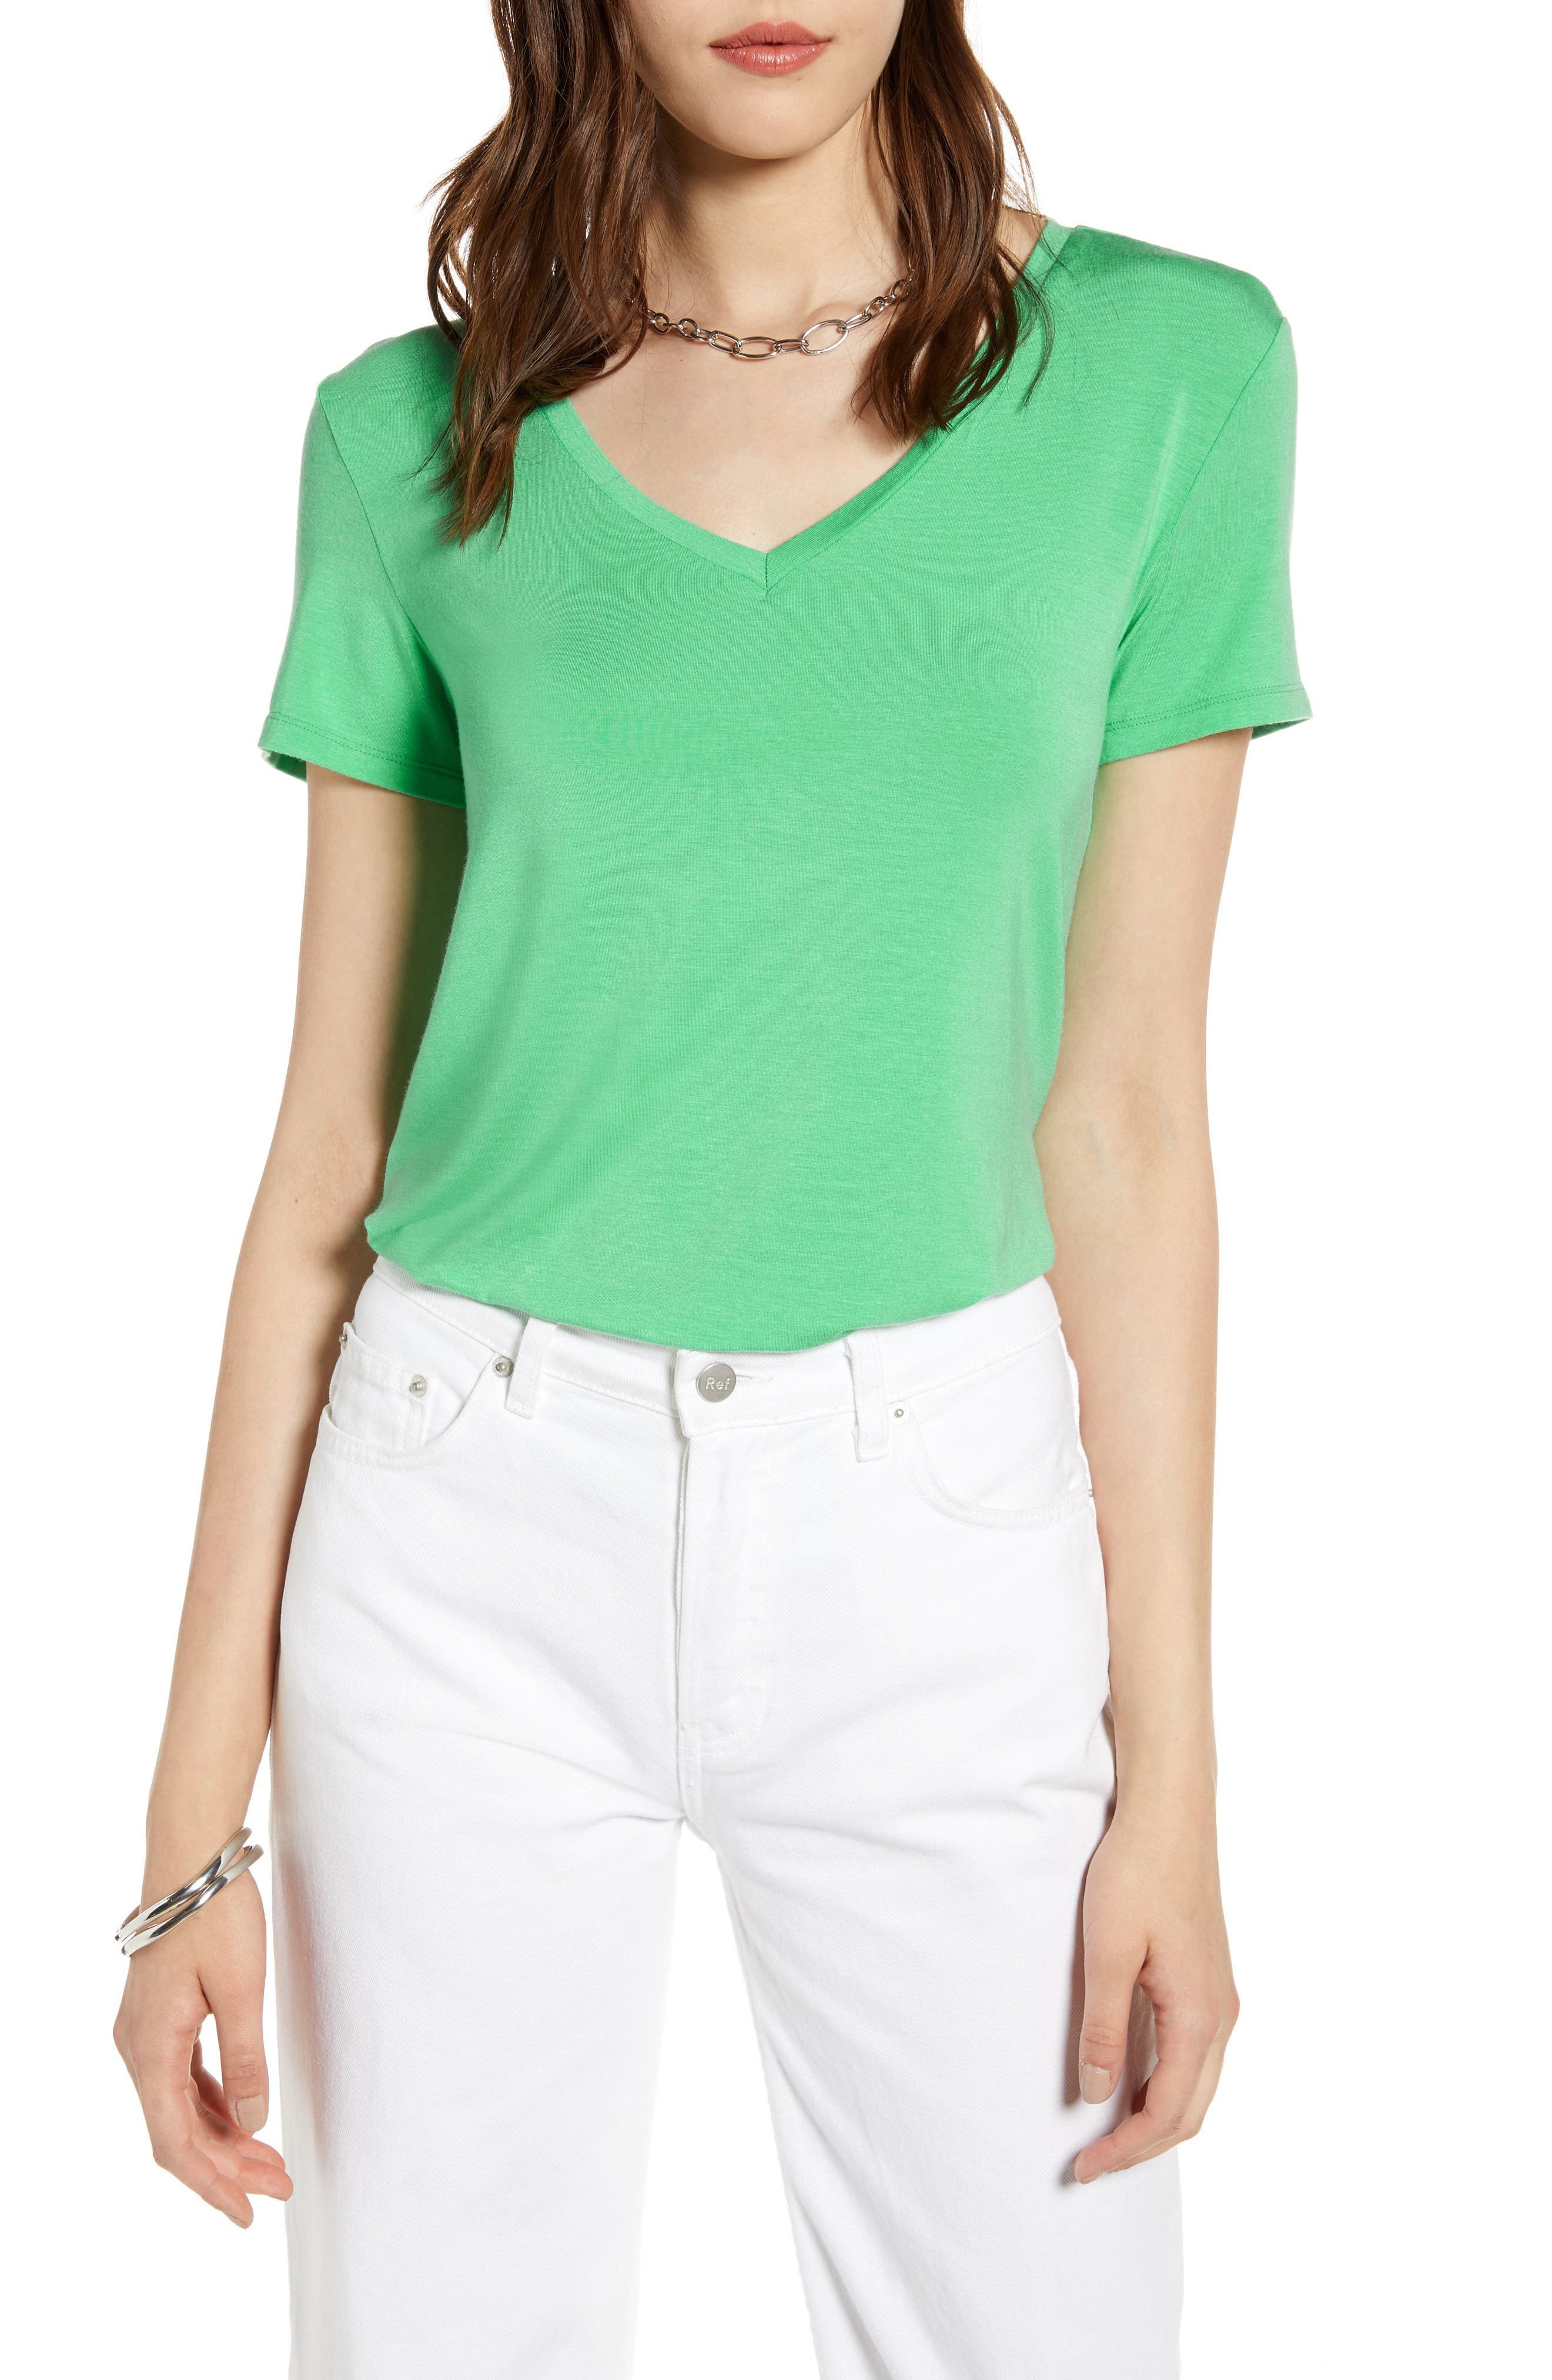 ef37276ef7 Women's Short Sleeve Tops | Nordstrom